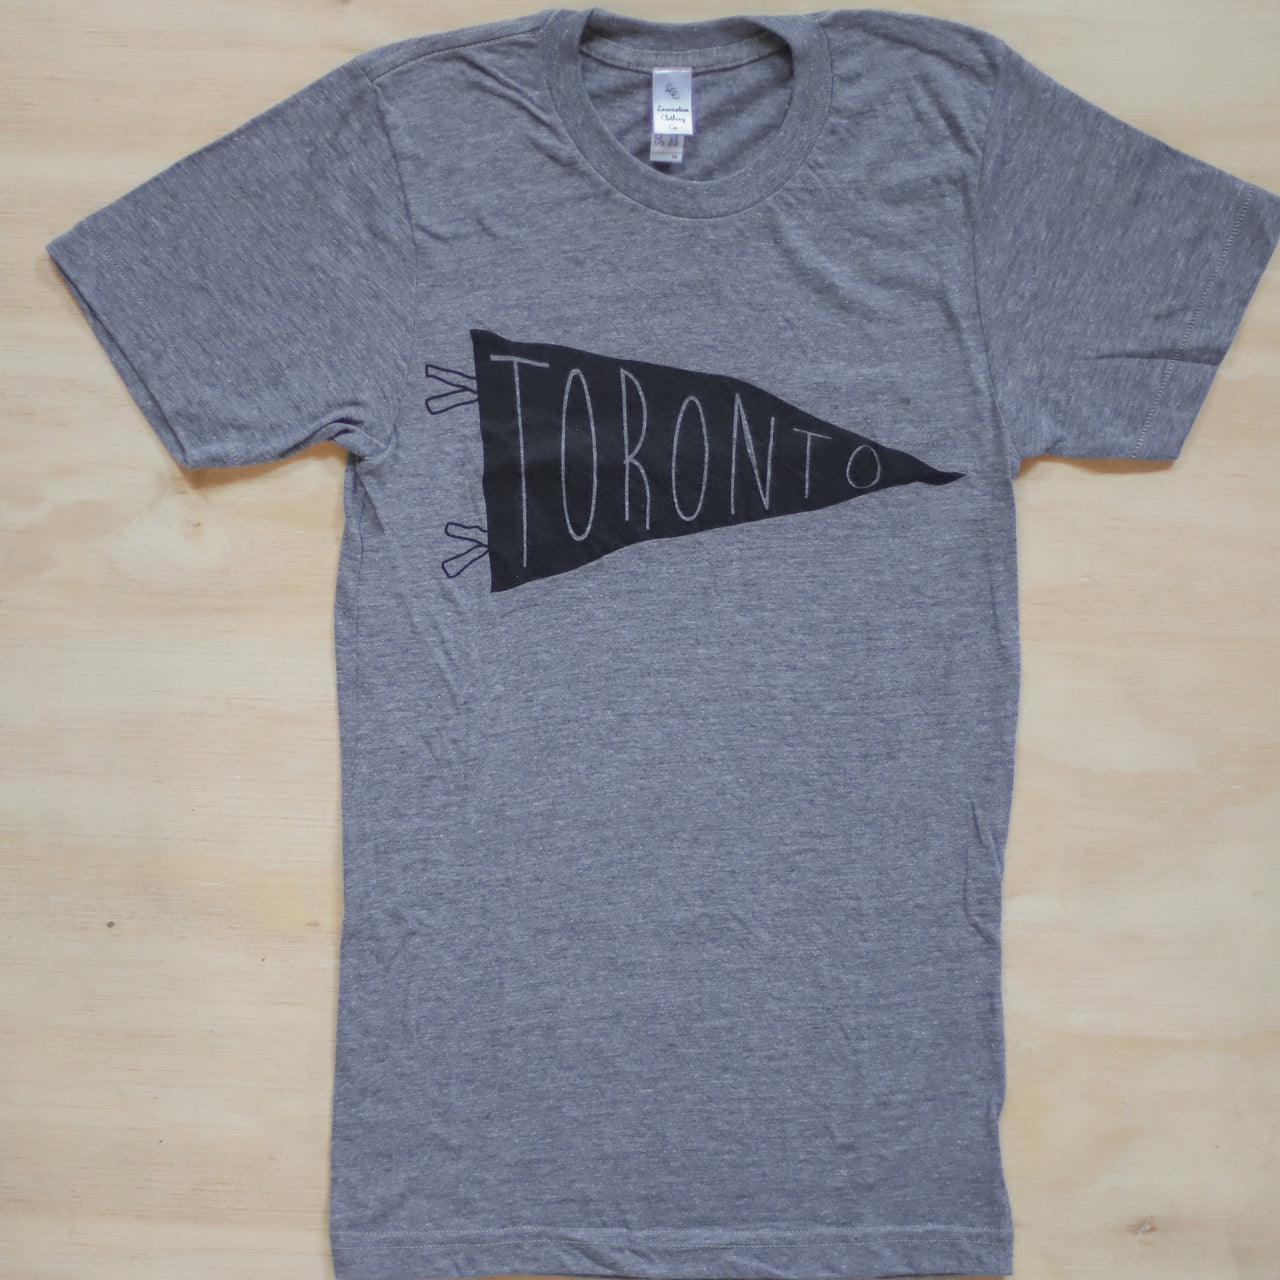 TORONTO Community Tee- Mens Overstock XS + XL ONLY